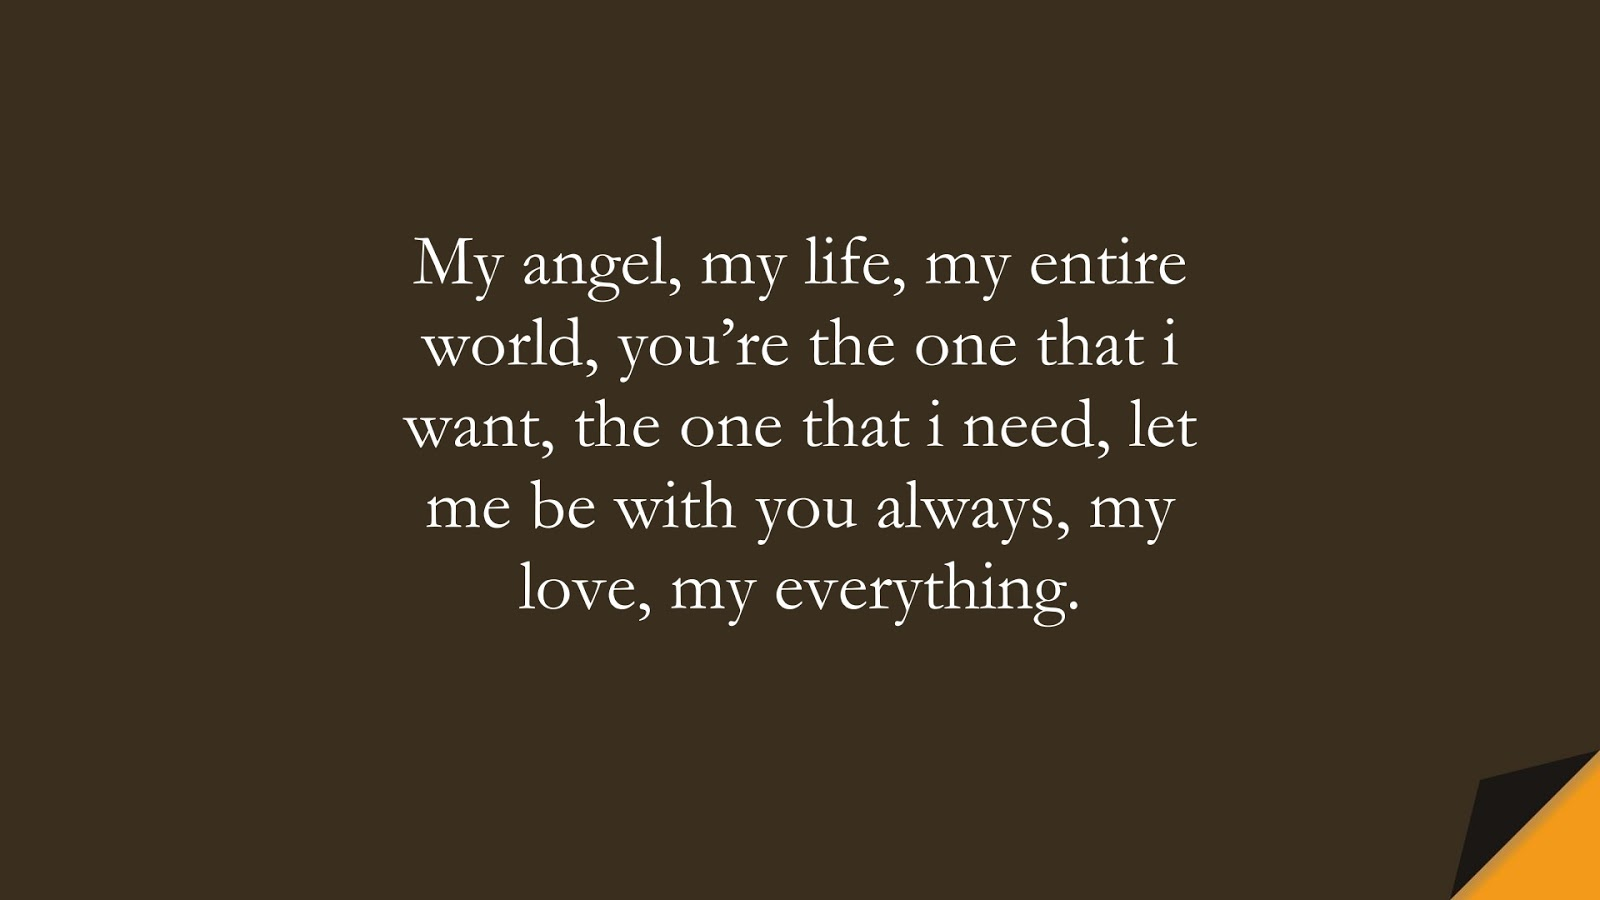 My angel, my life, my entire world, you're the one that i want, the one that i need, let me be with you always, my love, my everything.FALSE